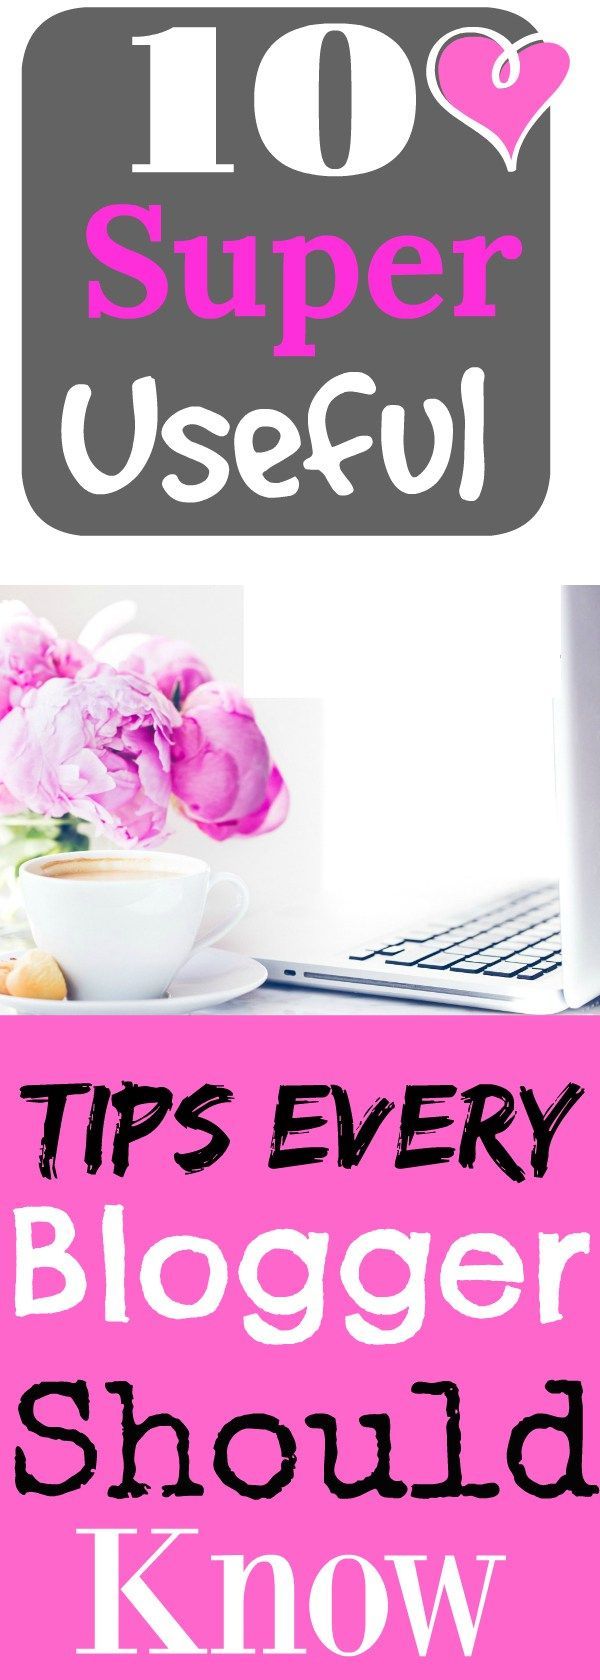 10 Super useful Tips every Blogger should know!